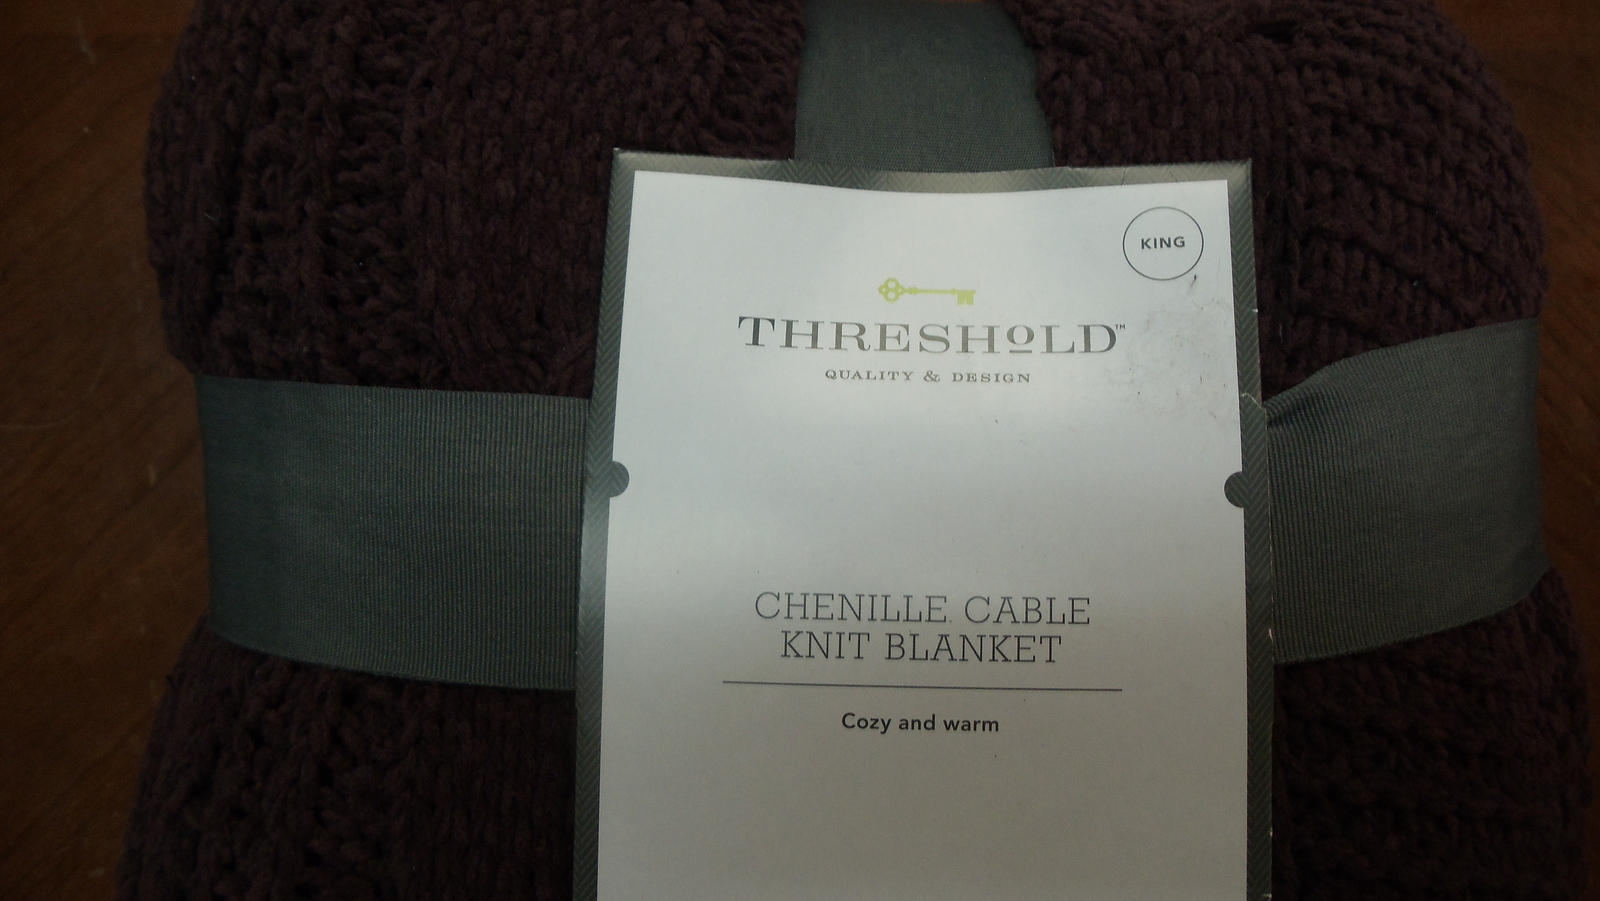 Threshold King Cable Knit Chenille Blanket Violet , King - $45.00